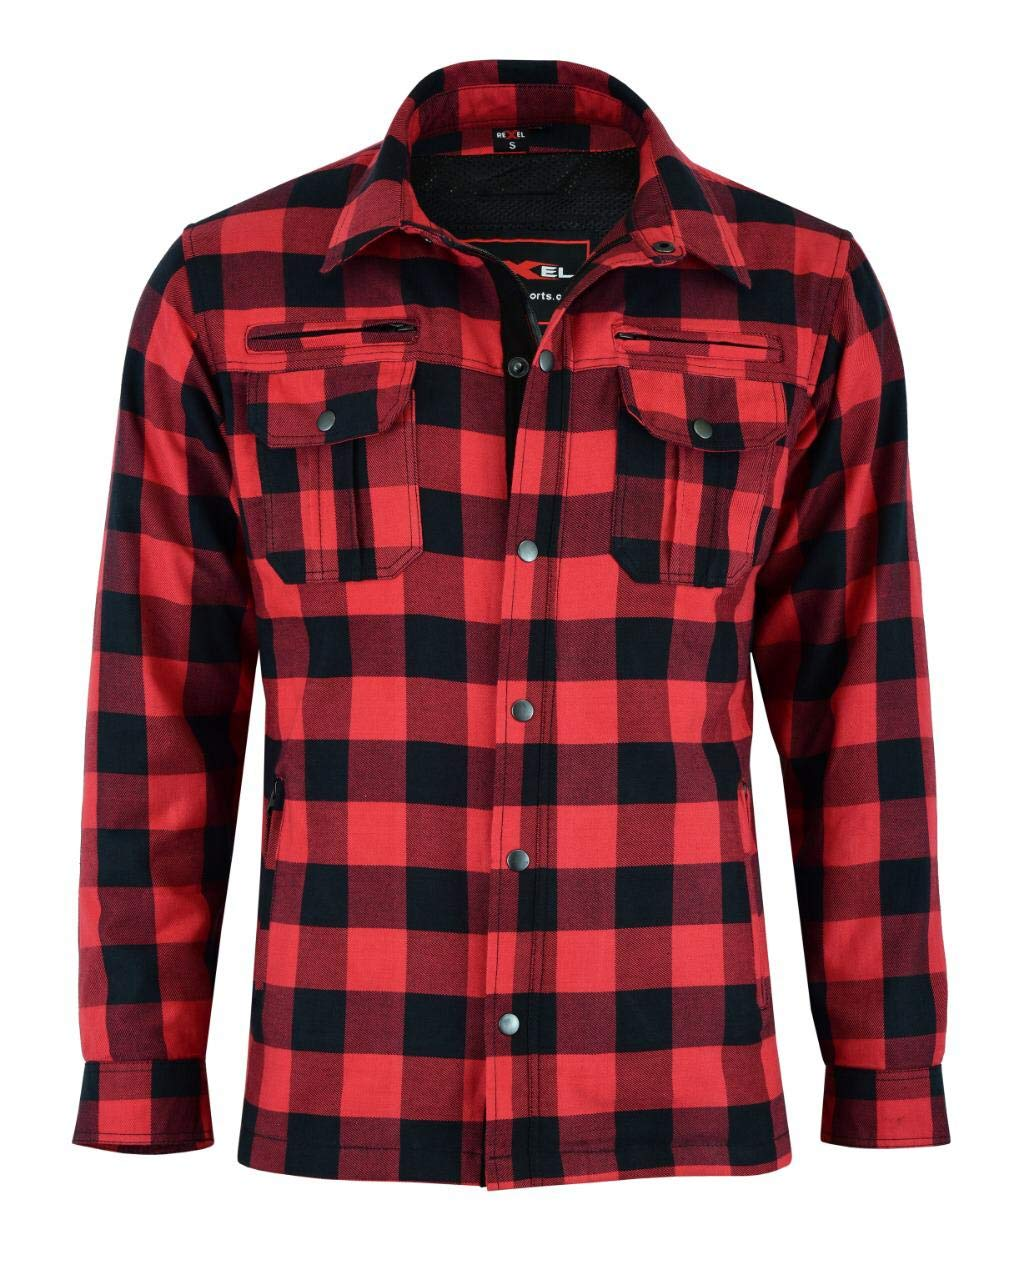 Vaster Lumberjack Reinforced Motorcycle Motorbike Check Shirt CE Armoured shirt for Men Boys Removable Protections WHITE//Black 2XL